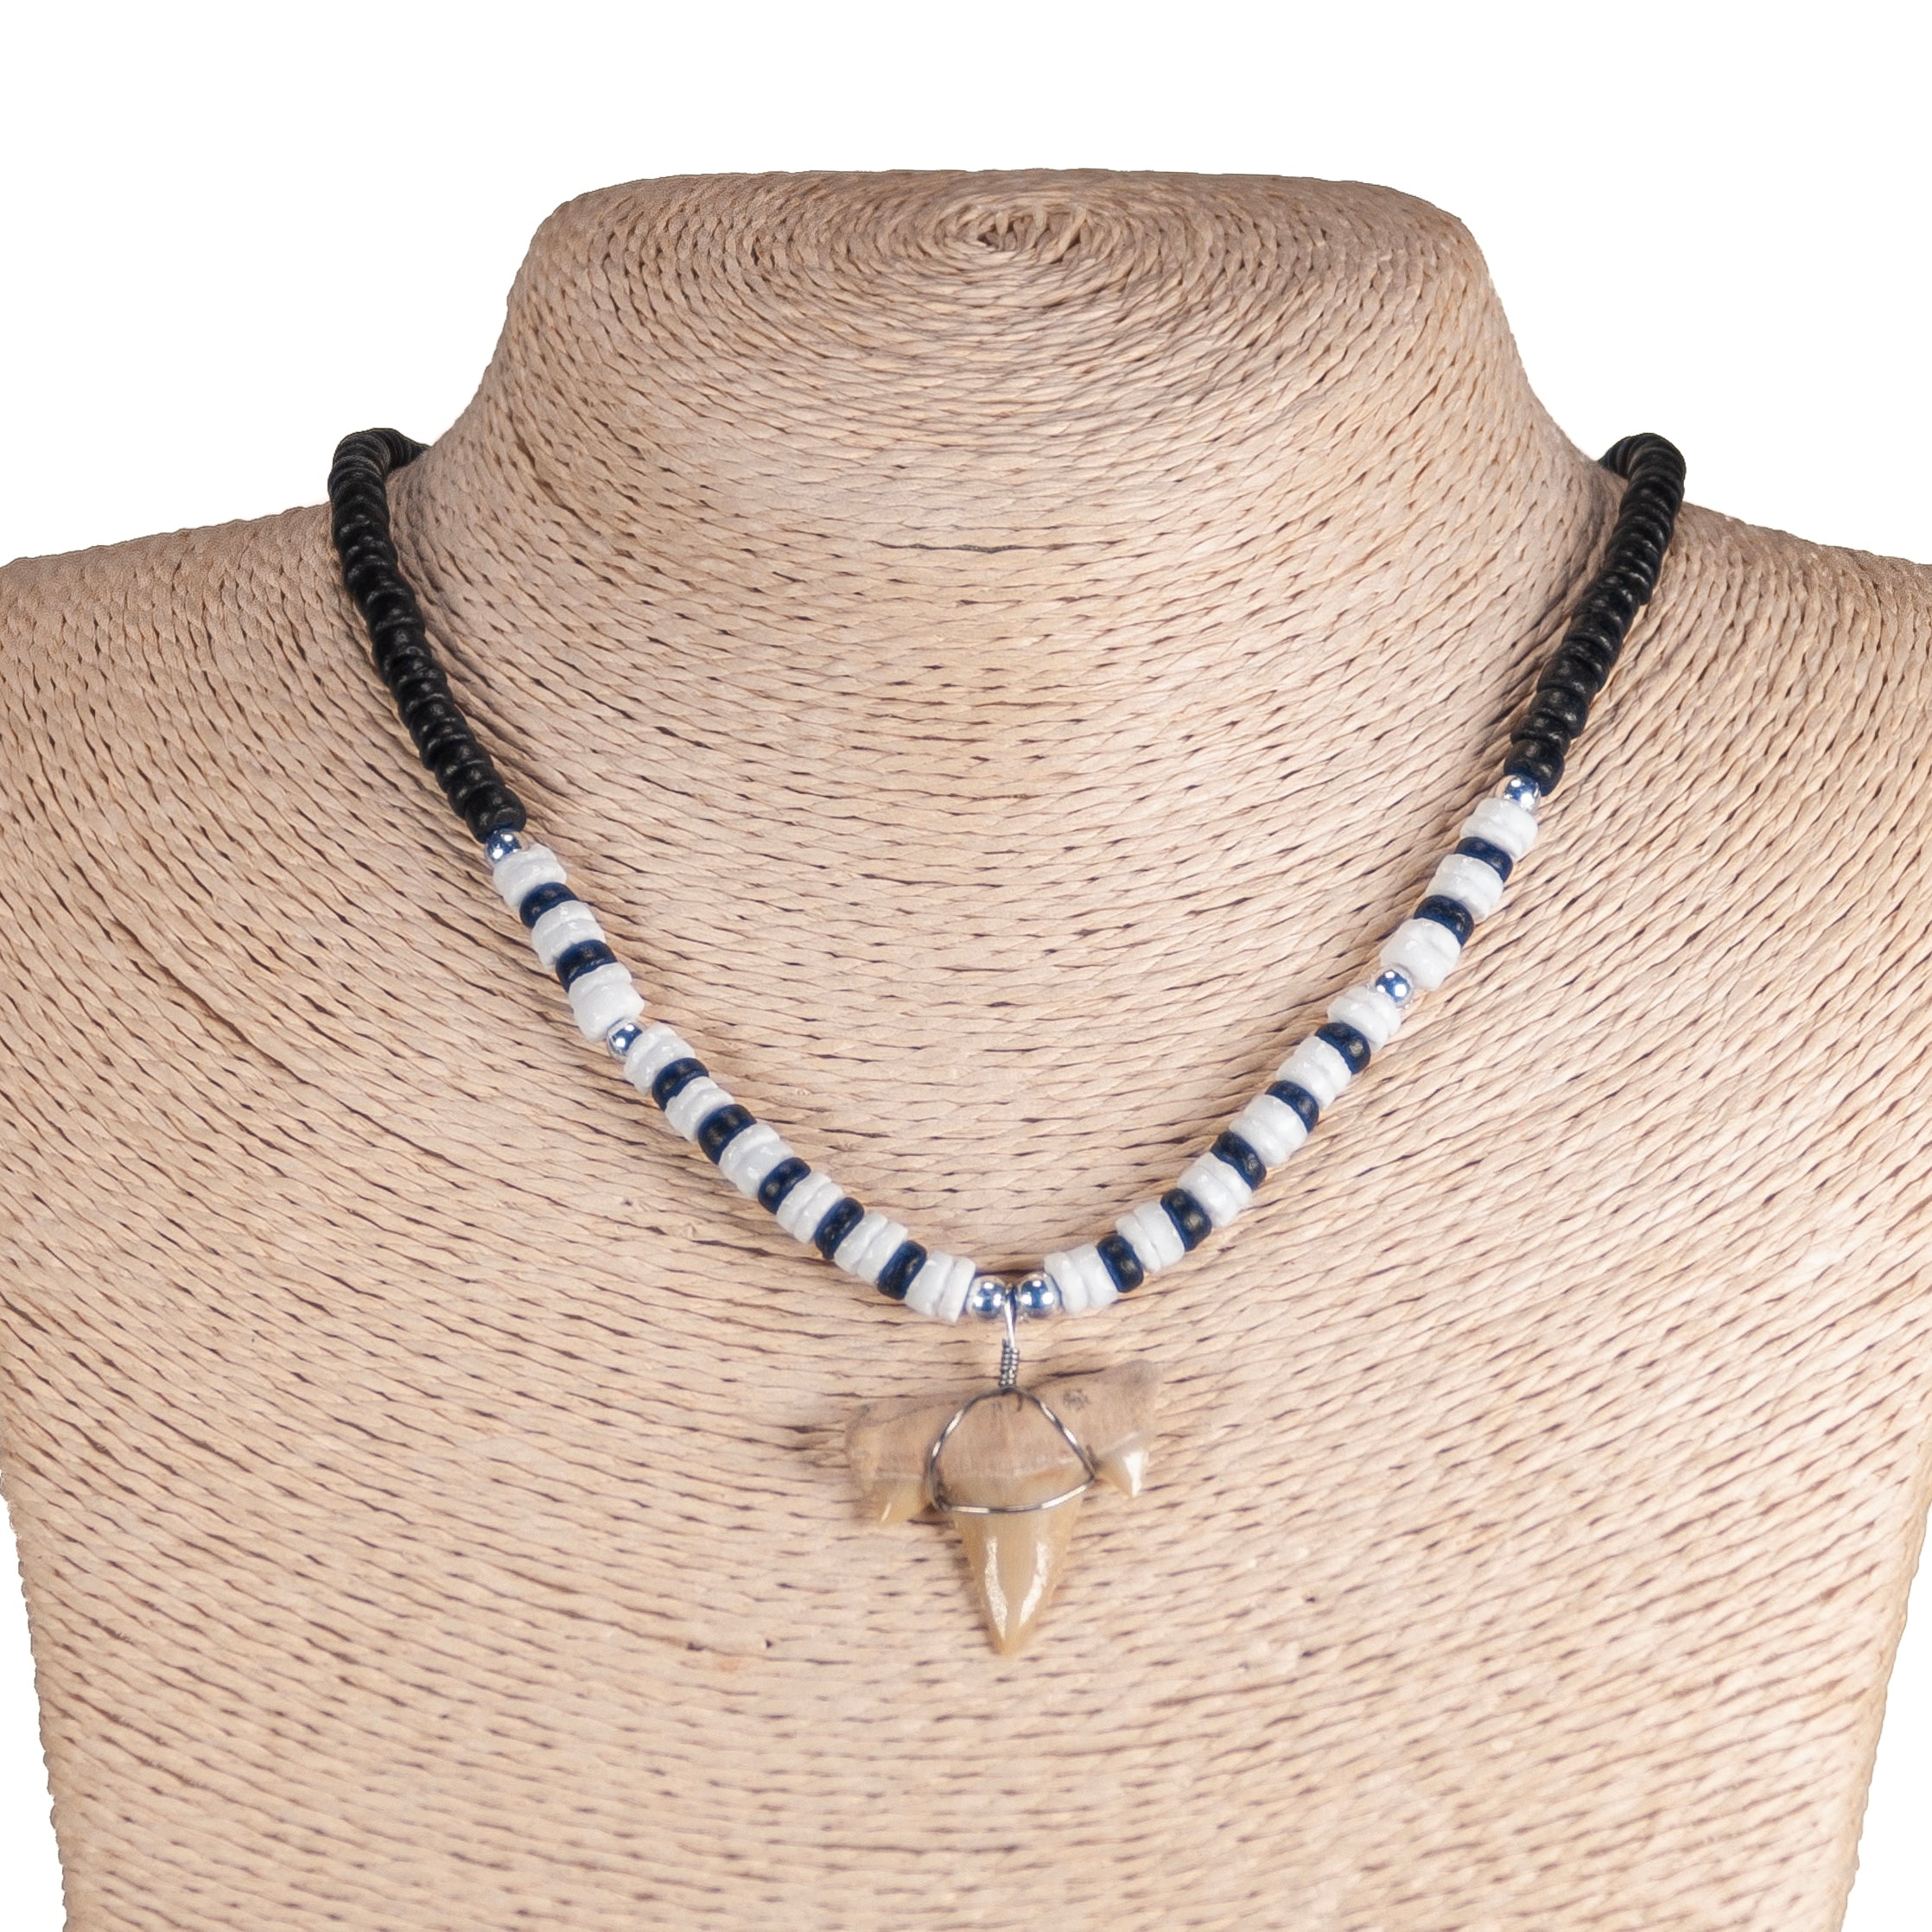 "1""+ Shark Tooth Pendant on Black Coconut and Puka Shell Beads Necklace"